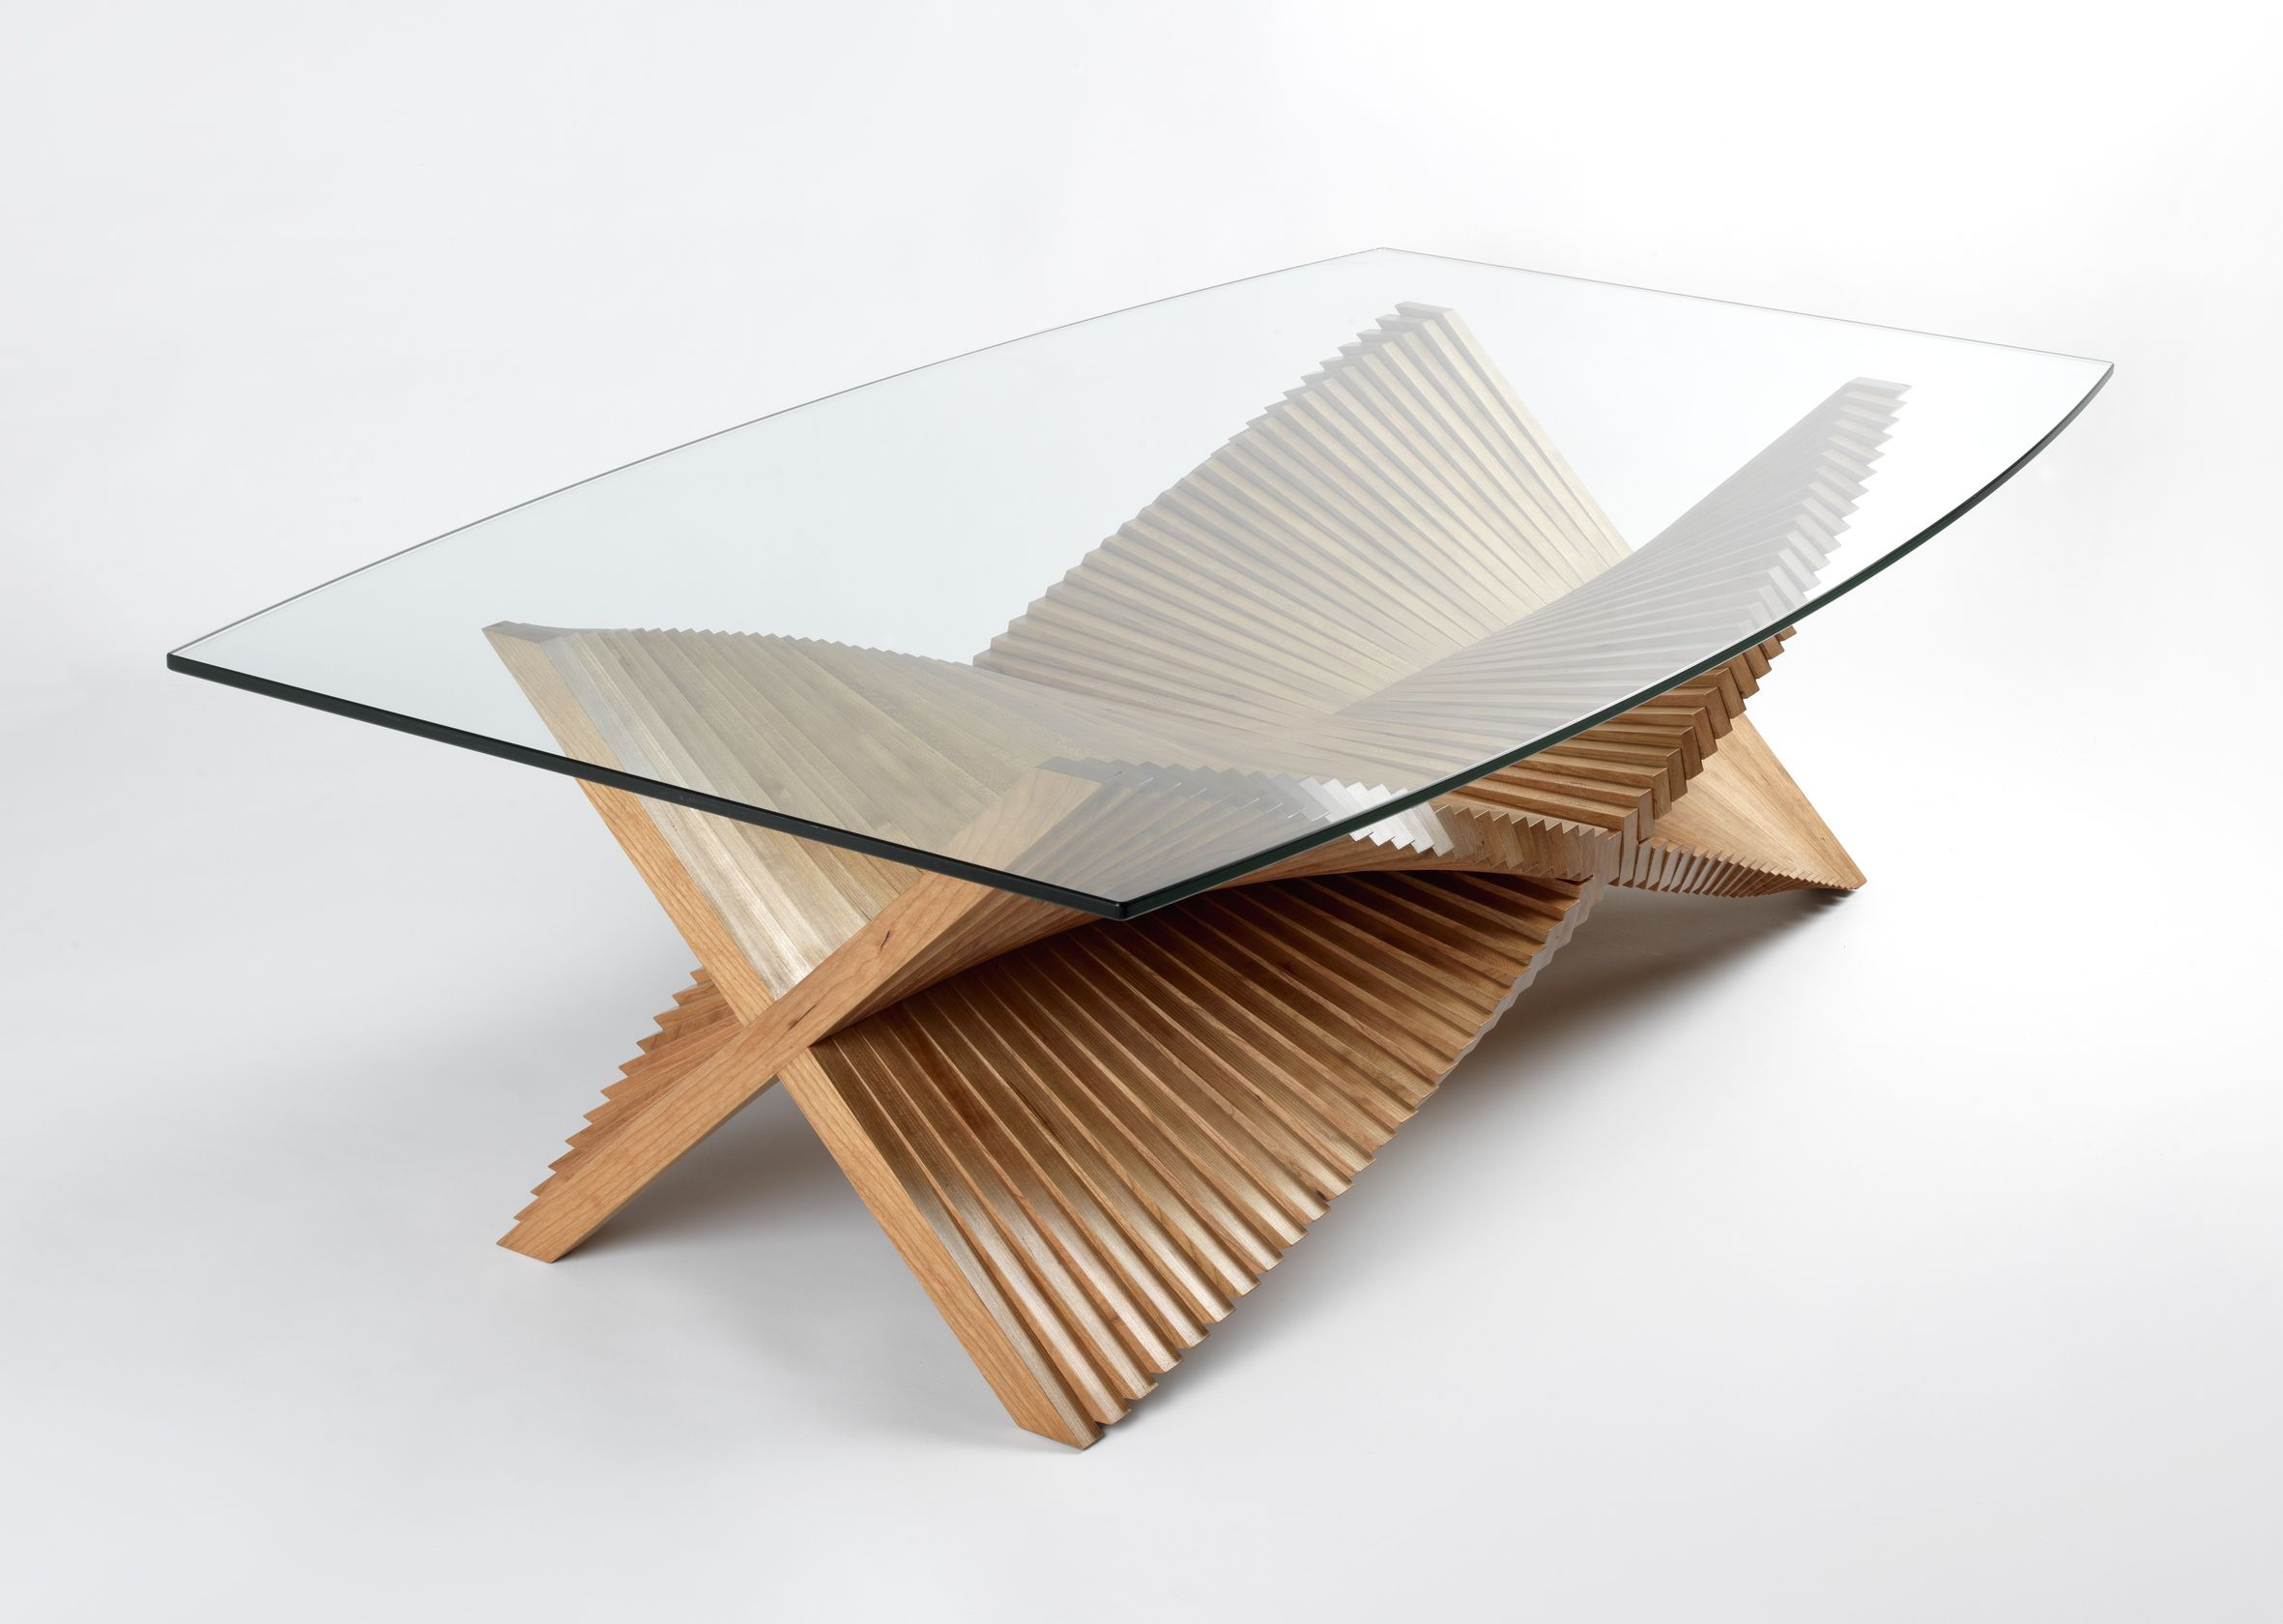 Beating Wings handmade sculptural coffee table by David Tragen